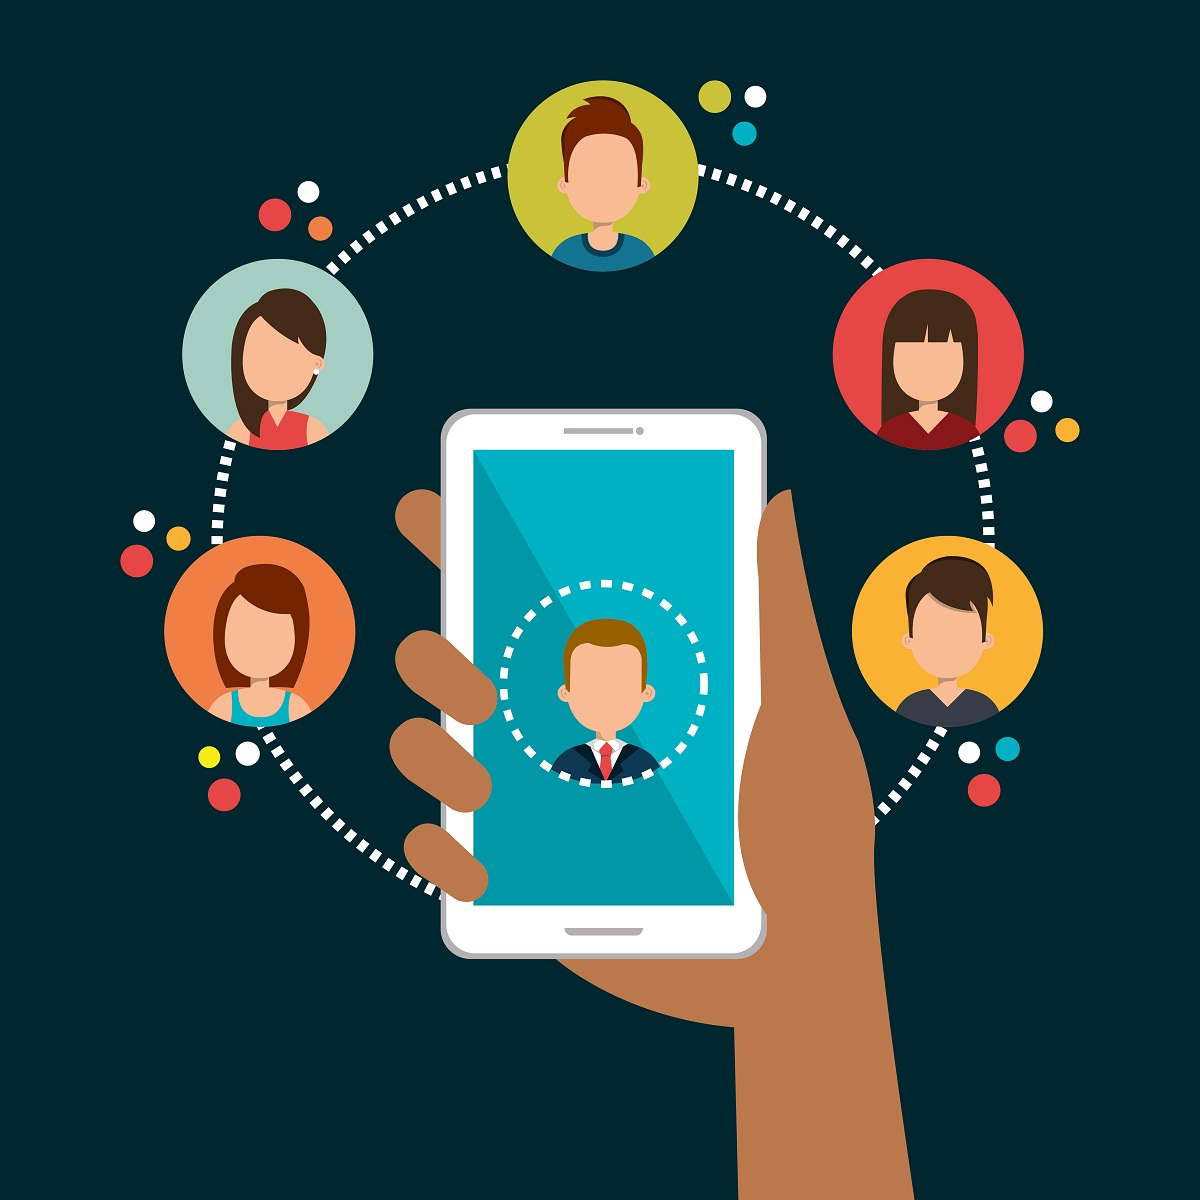 Companies want to develop a relationship with customers